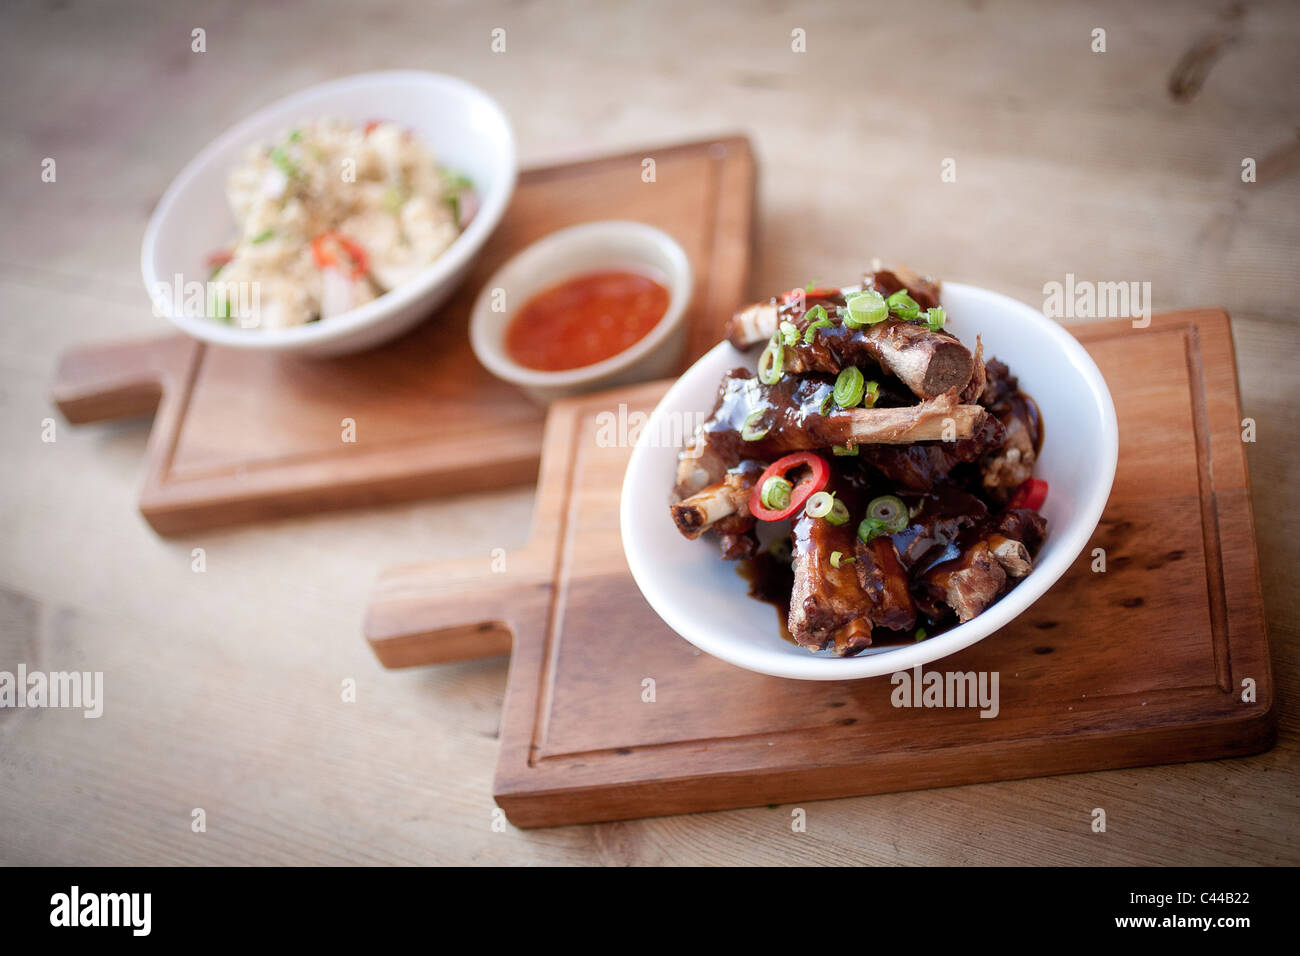 A dish of Chinese sticky pork ribs served with rice noodles and sweet chili dipping sauce, spring onions - Stock Image